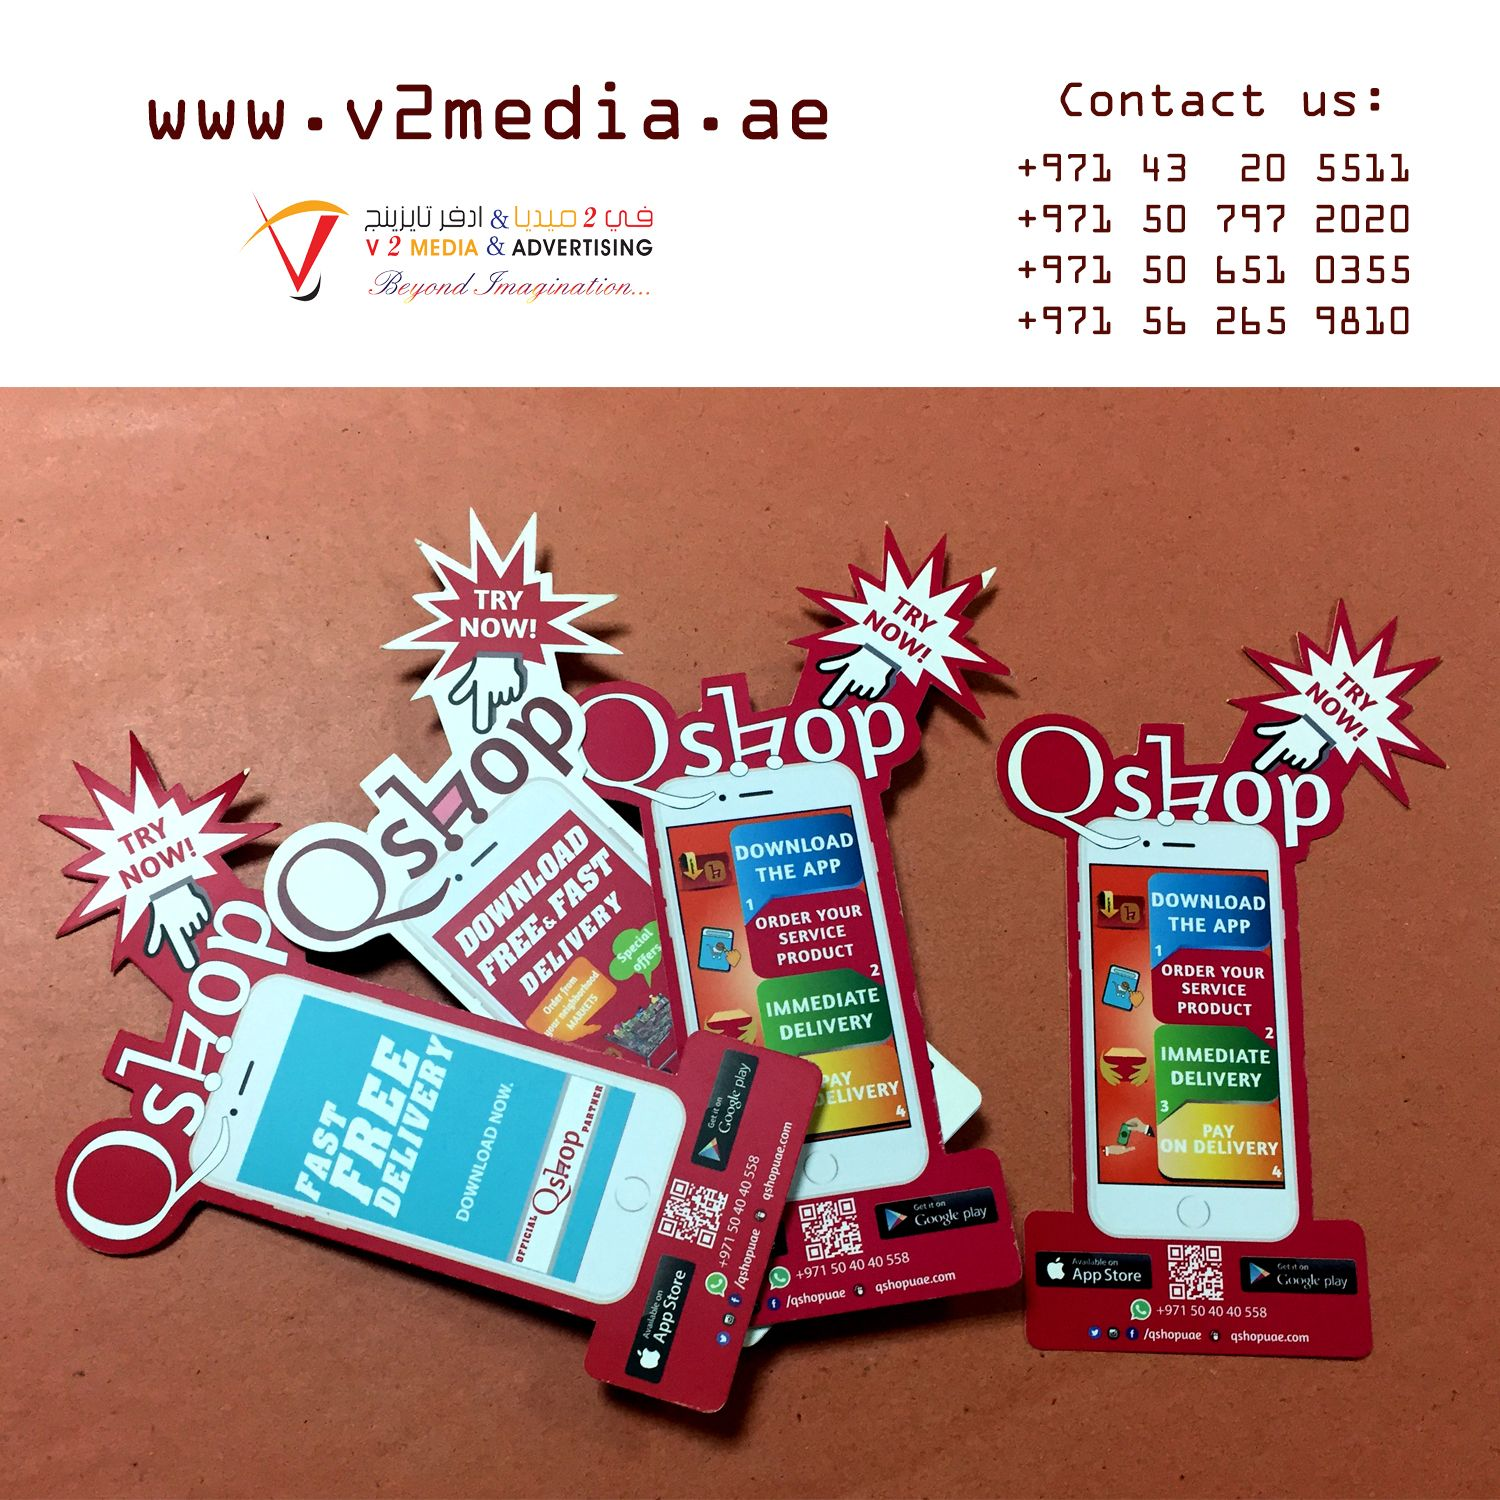 Sample Flyers For Layout By V2 Media Www V2media Ae Contact Us 971 4 320 5511 971 50 797 2020 971 Sample Flyers Printing Services Branding Services